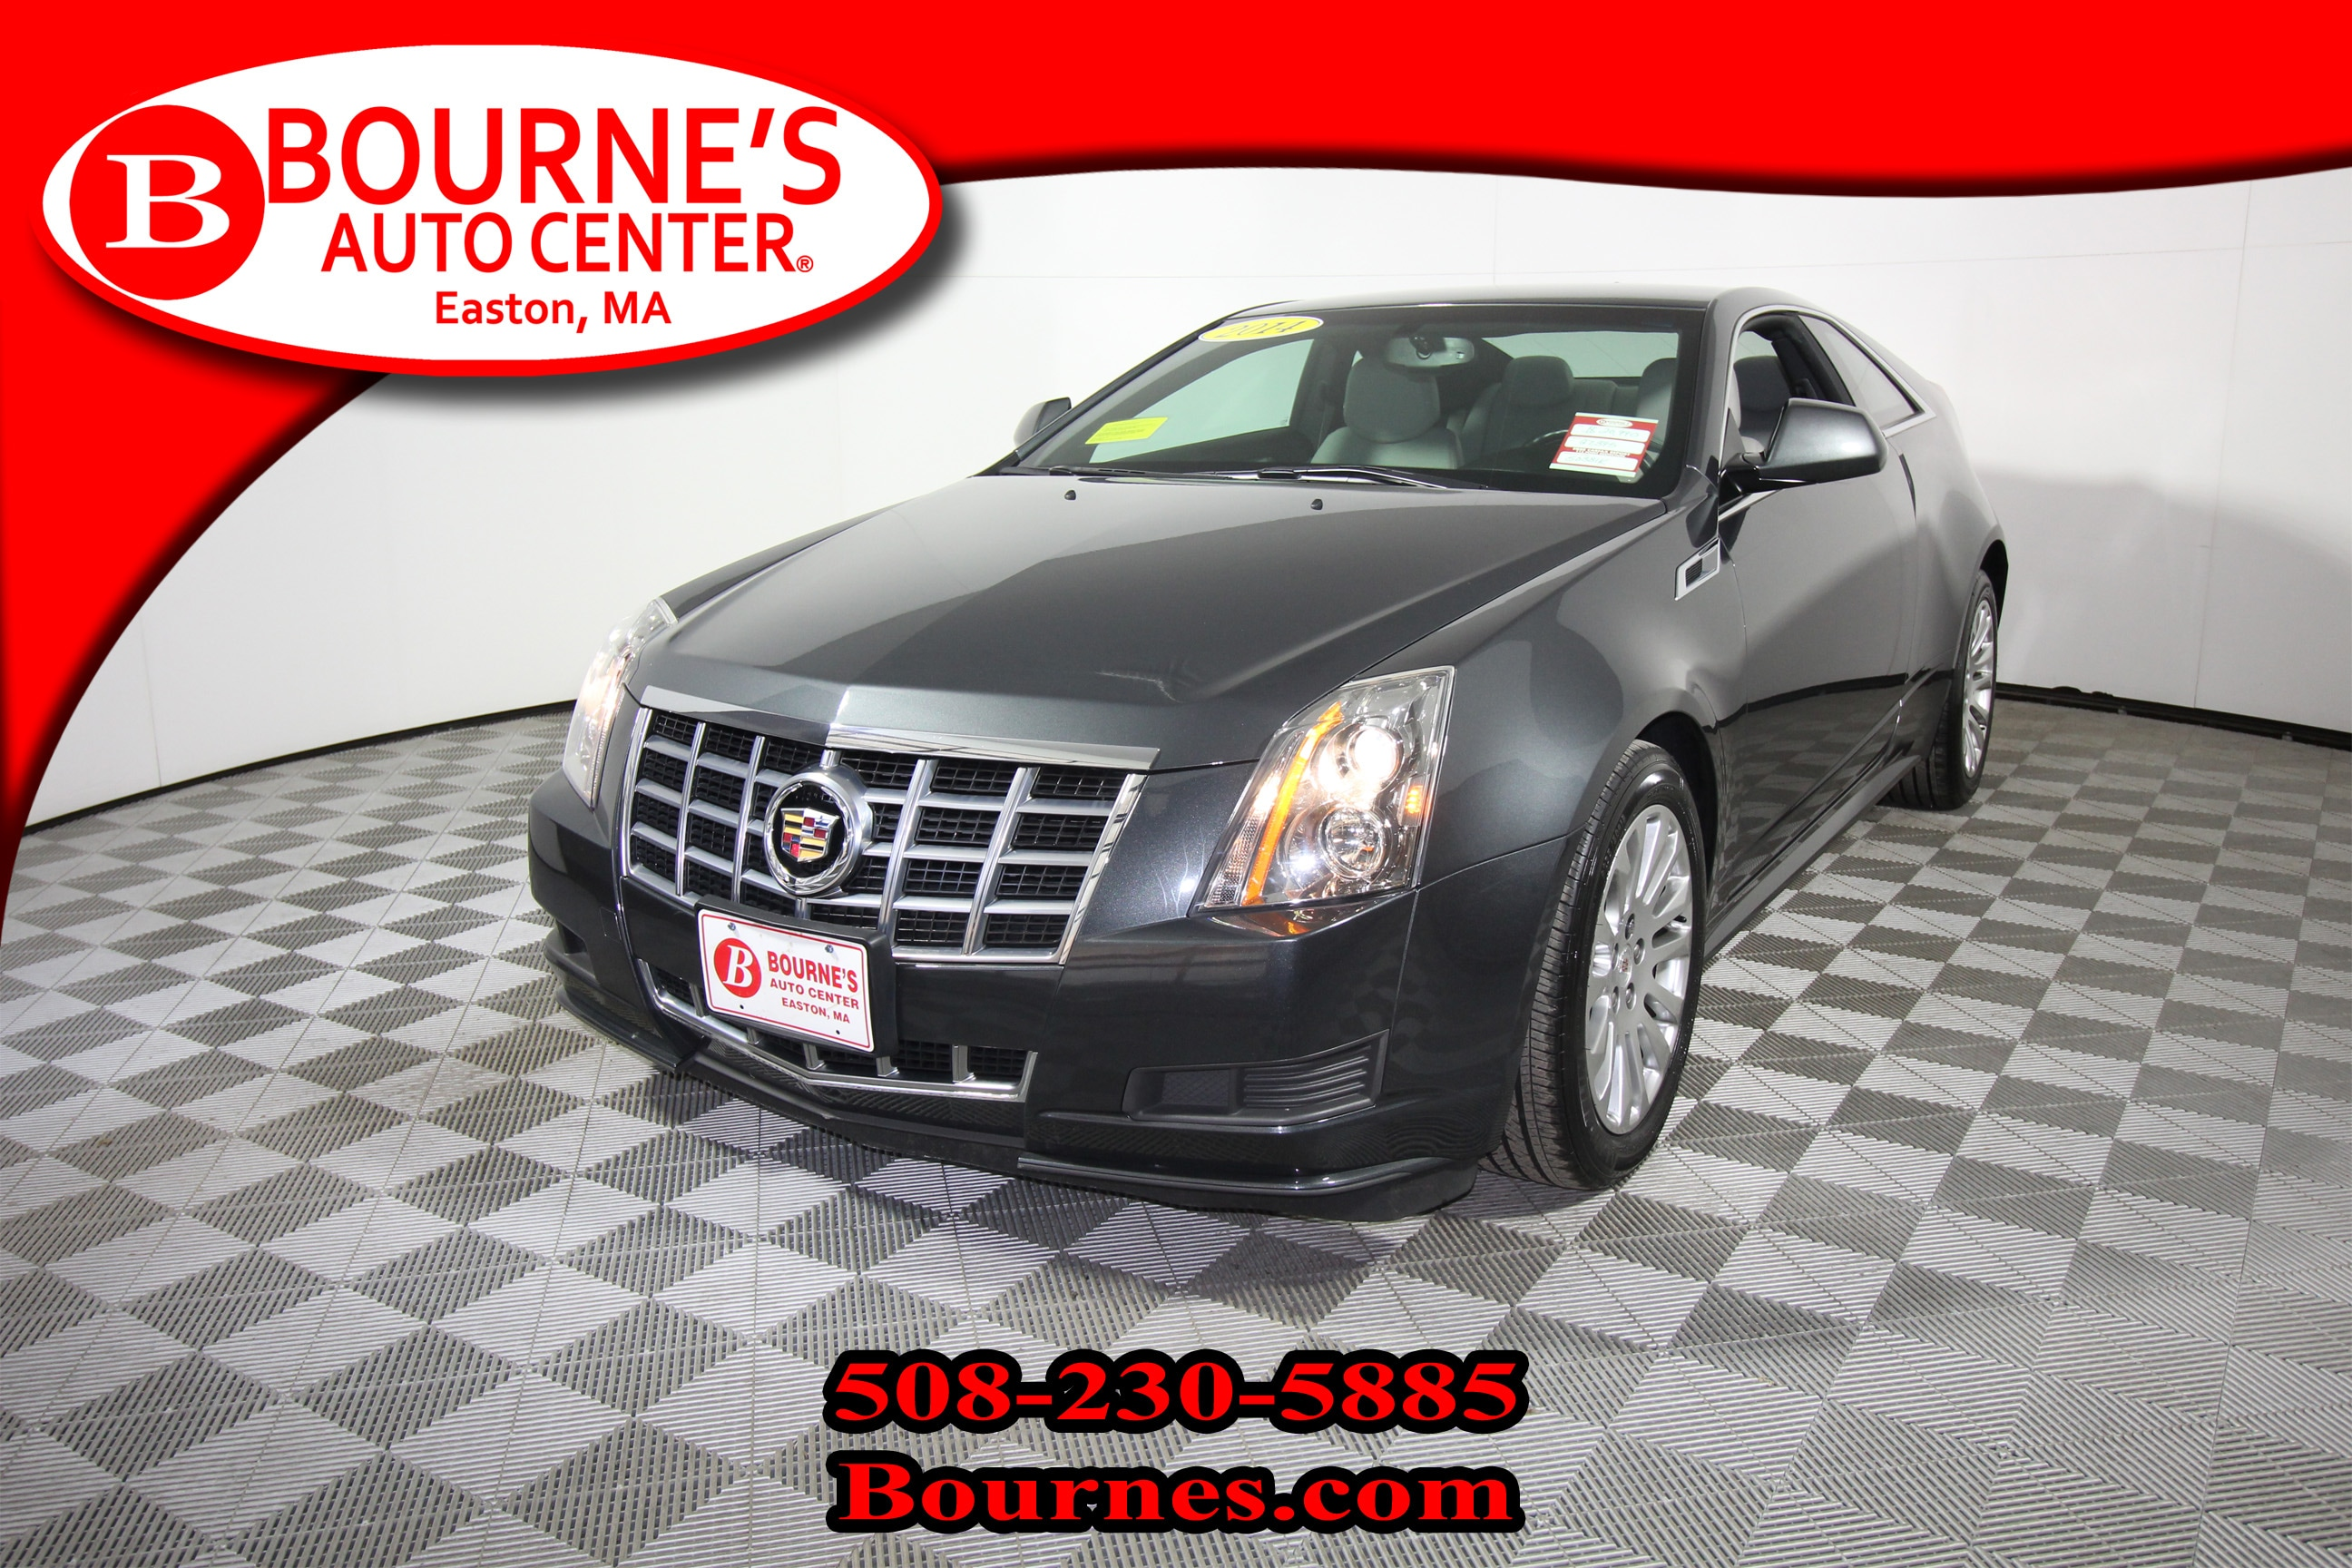 used cadillac cts coupe for sale providence ri cargurus. Black Bedroom Furniture Sets. Home Design Ideas